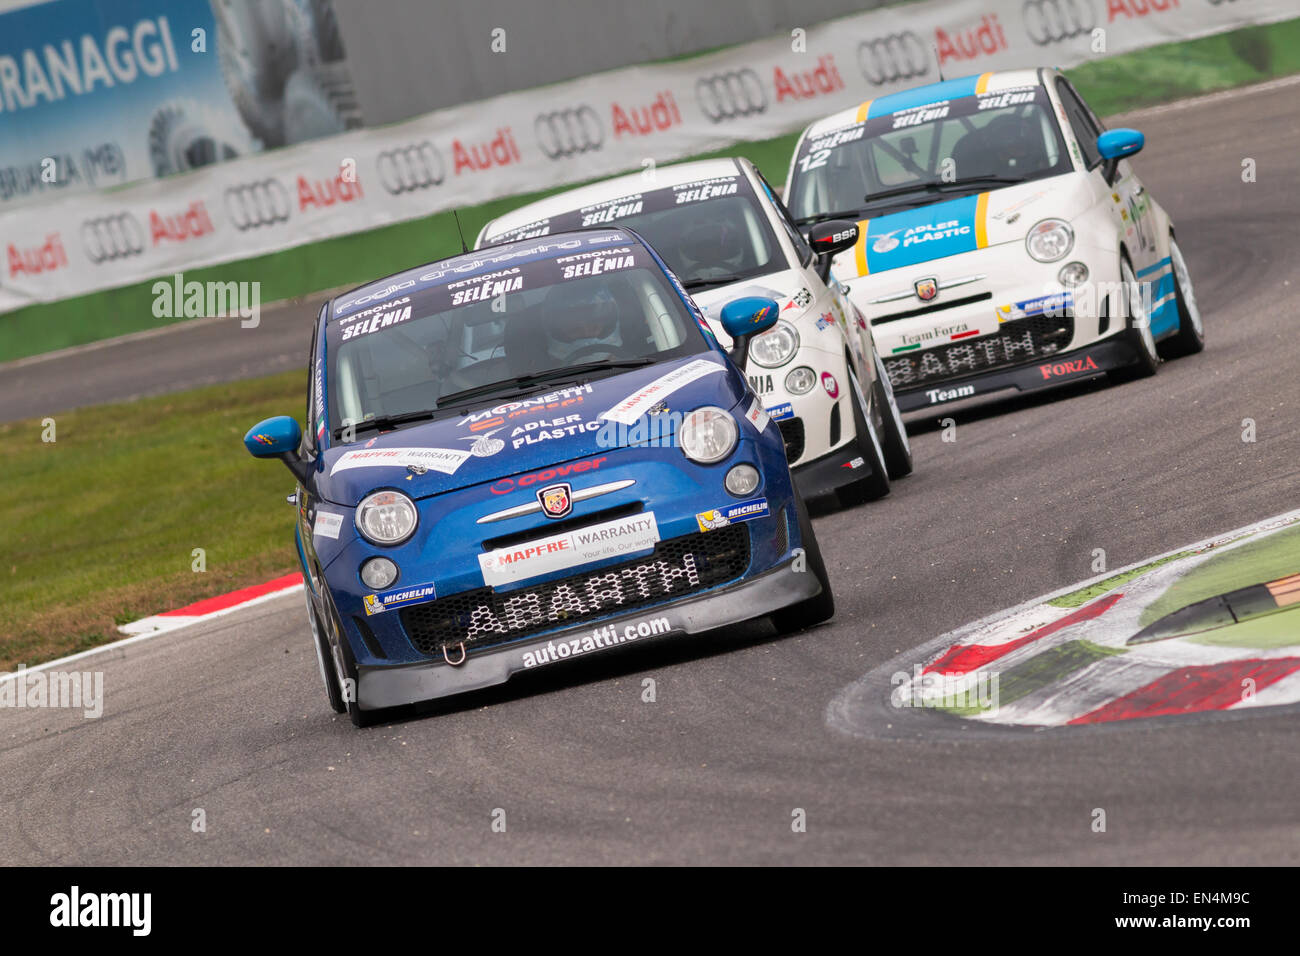 hight resolution of monza italy october 25 2014 fiat abarth 695 of c c racing team driven by campani alex in action during the abarth italia europa trophy race in